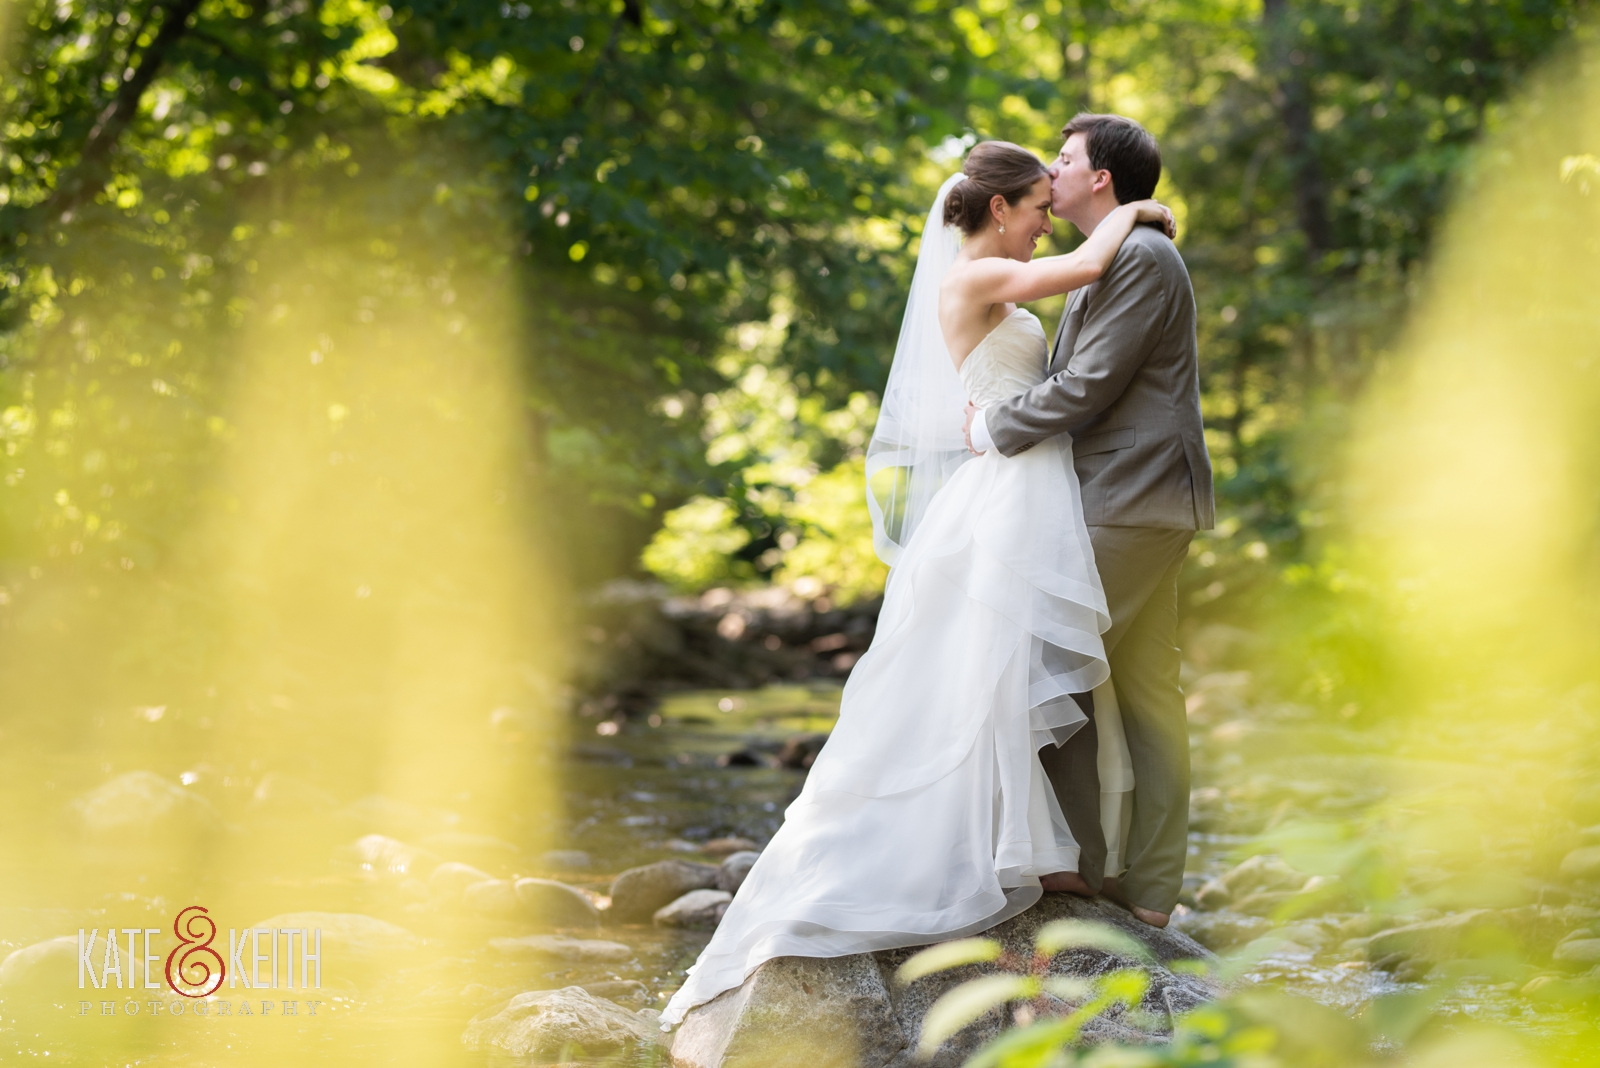 bride and groom outdoor wedding photos in stream Grafton Vermont